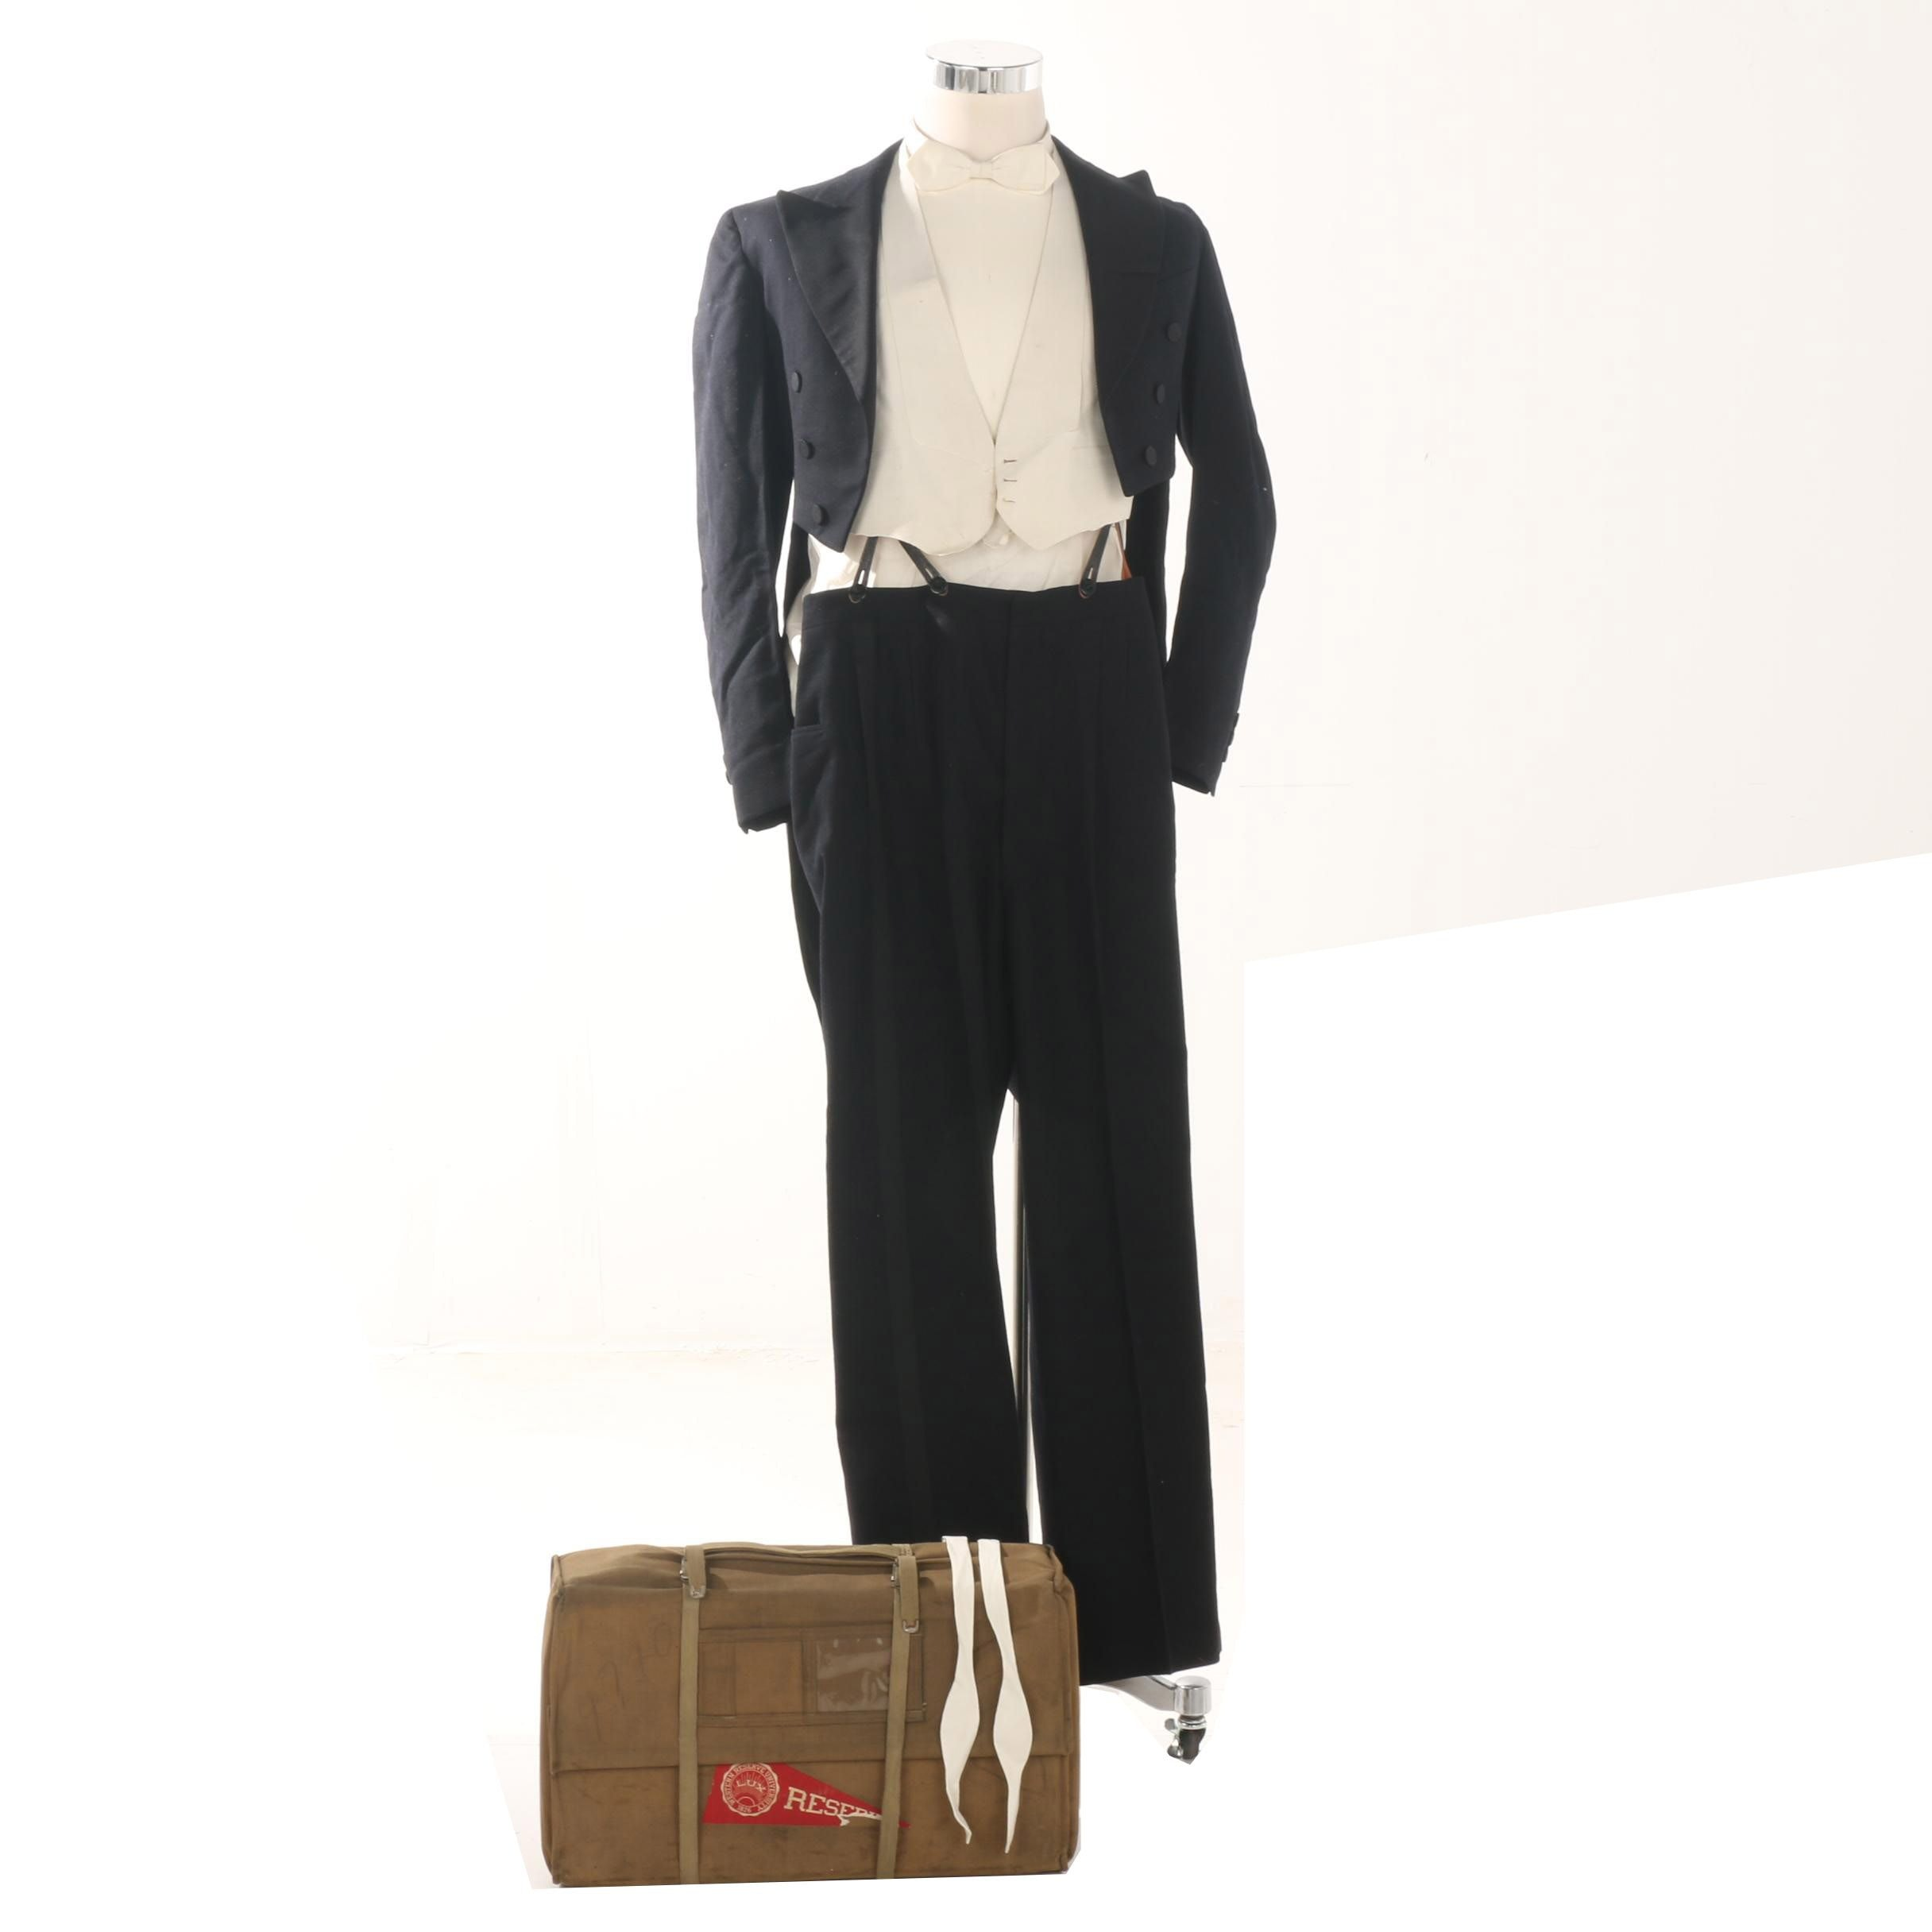 1920s Western Reserve Graduation Tuxedo with Tails